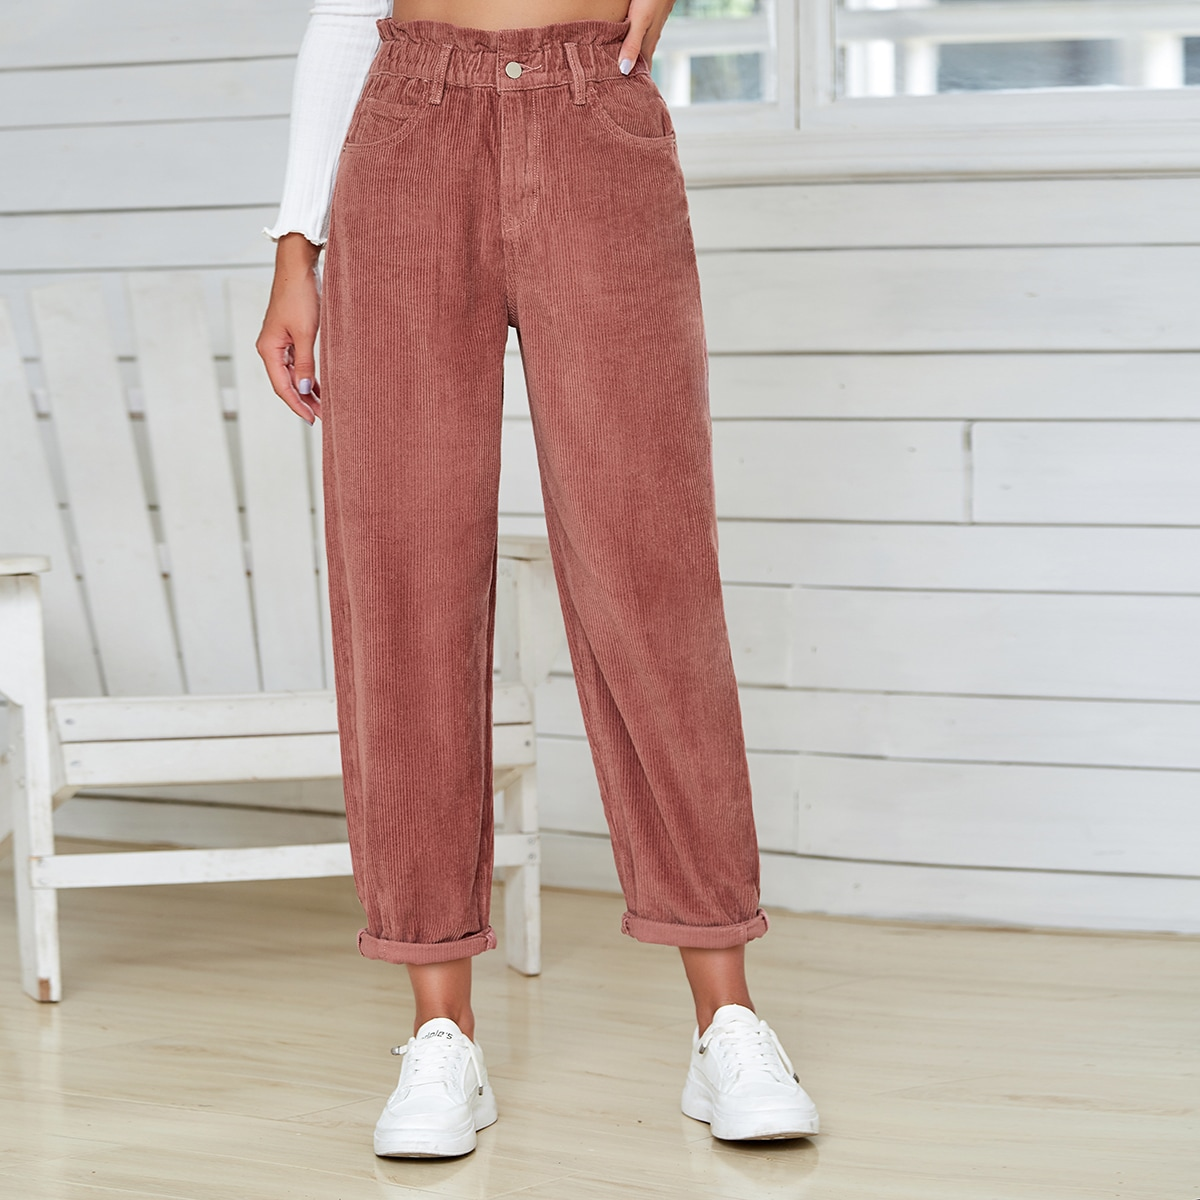 Paperbag Waist Corduroy Pants, SHEIN  - buy with discount